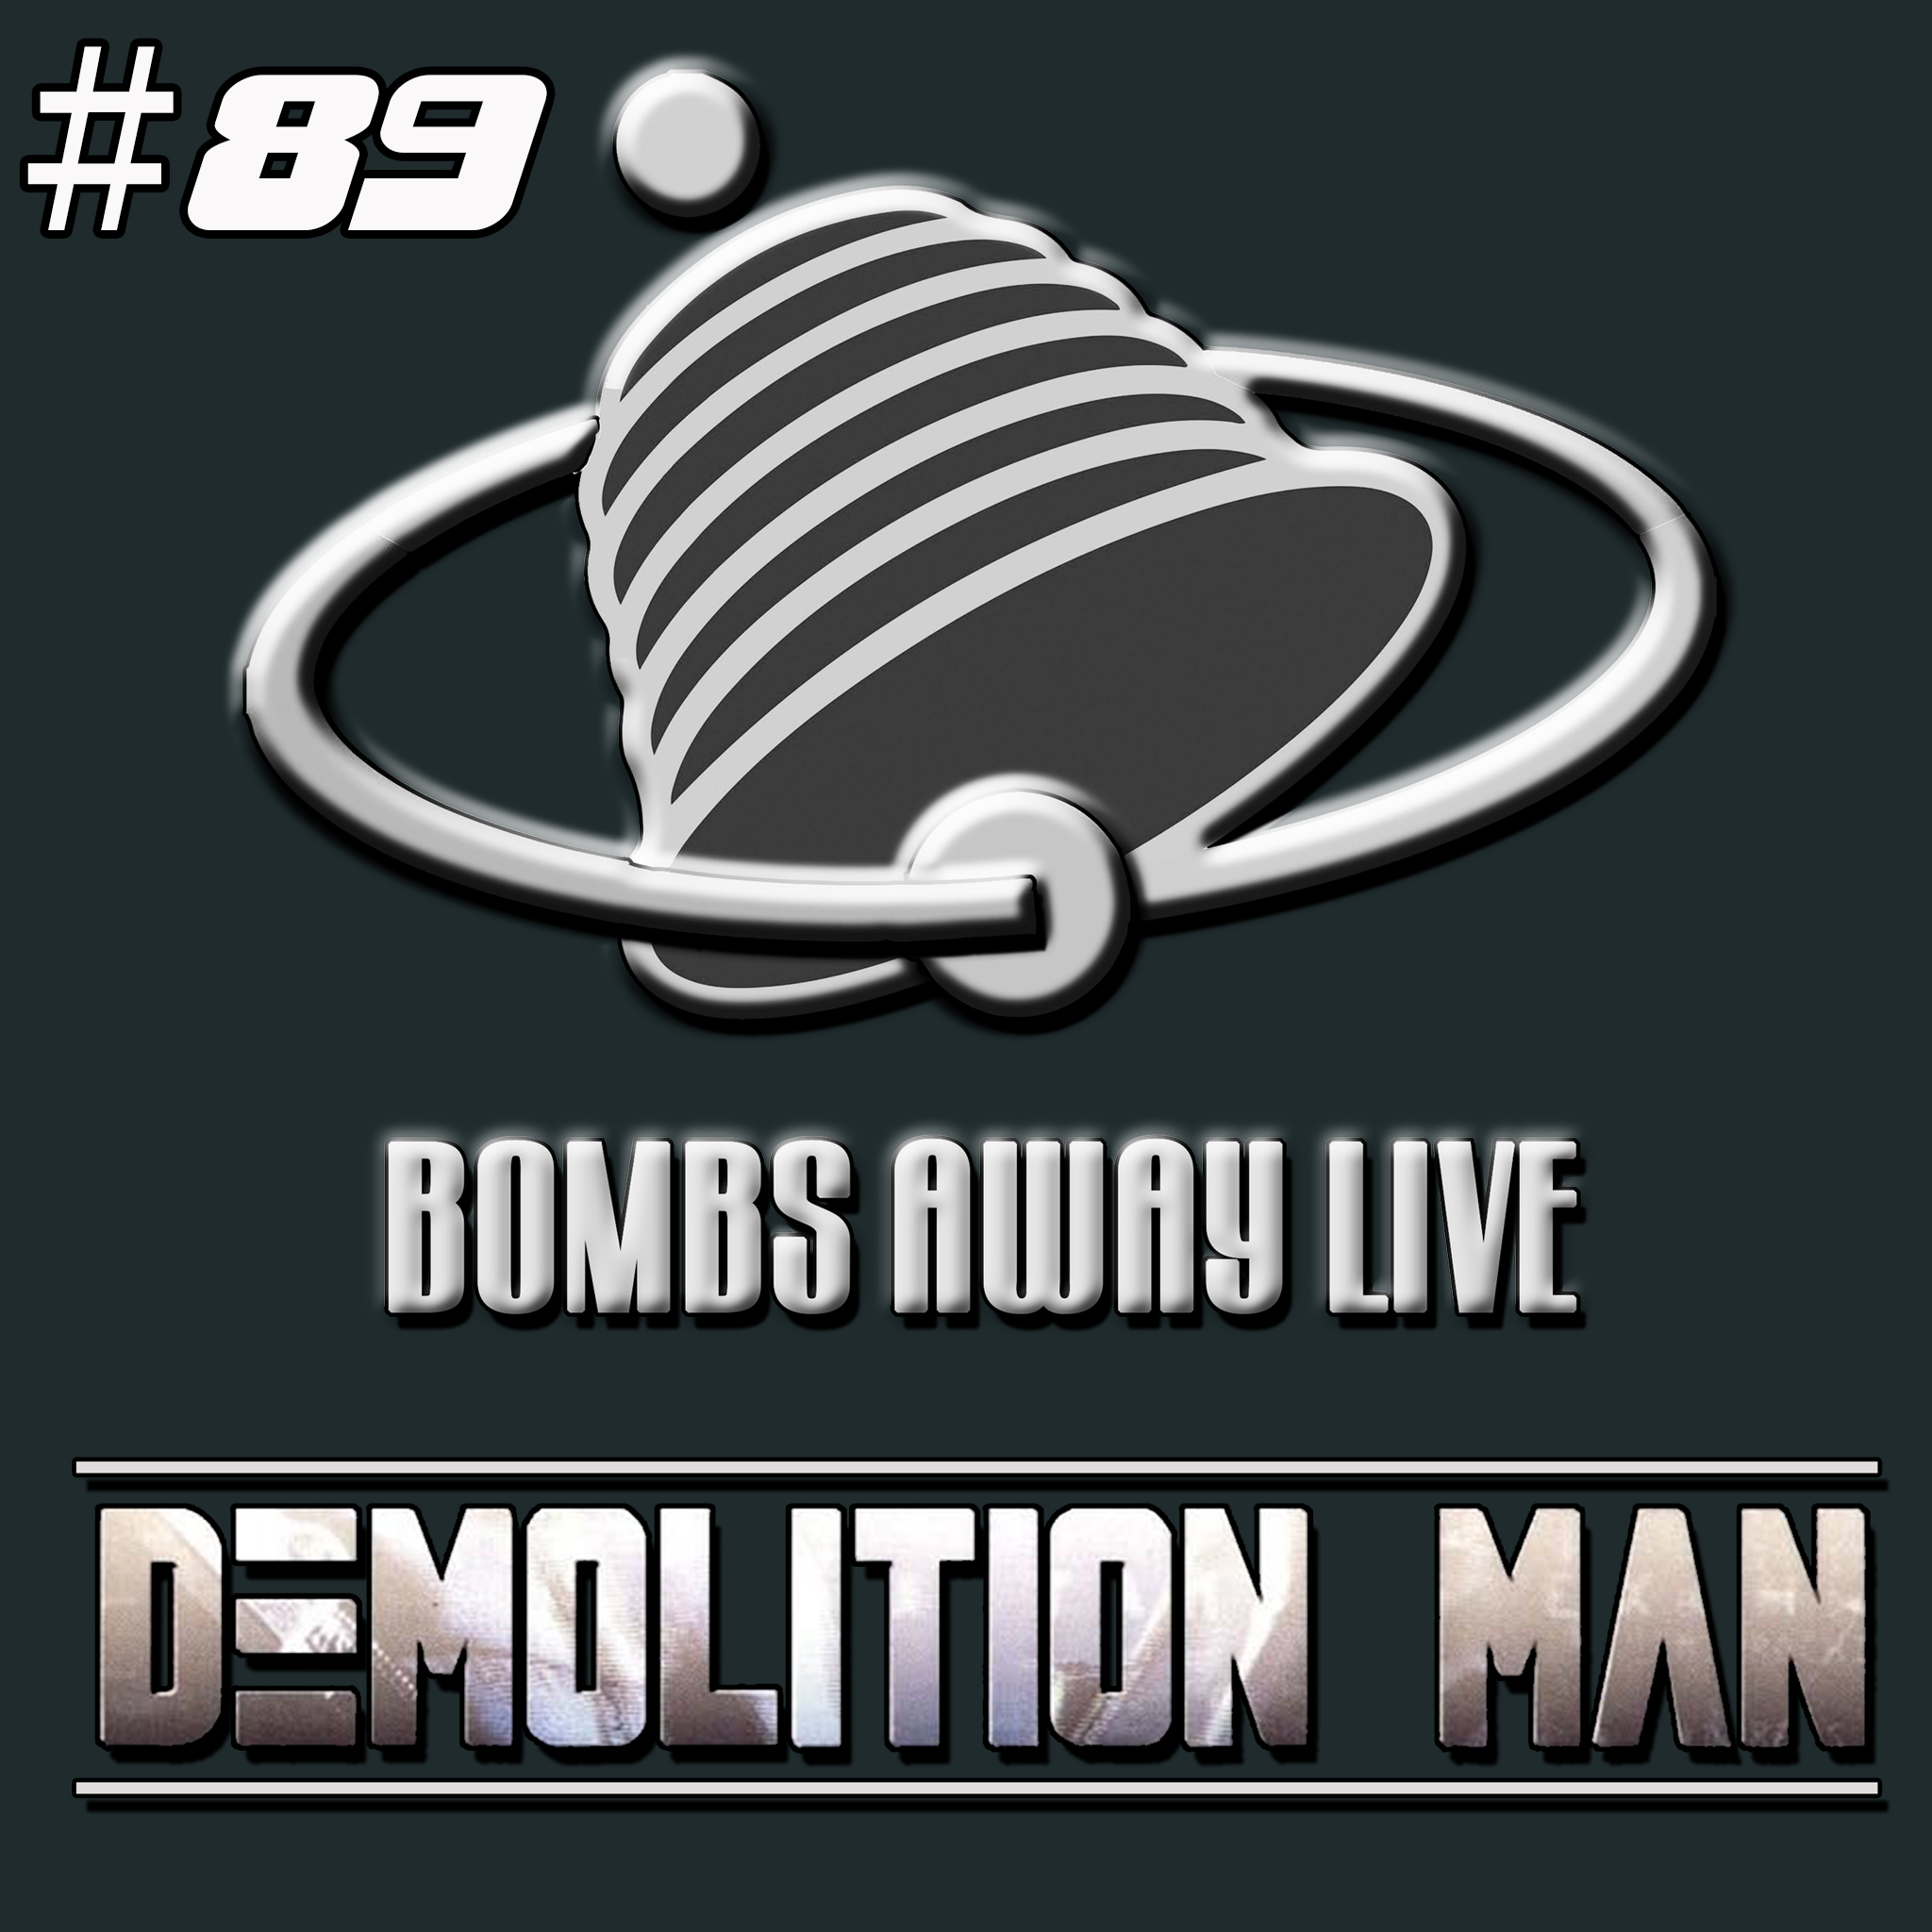 Episode 89 - Demolition Man (1993) LIVE